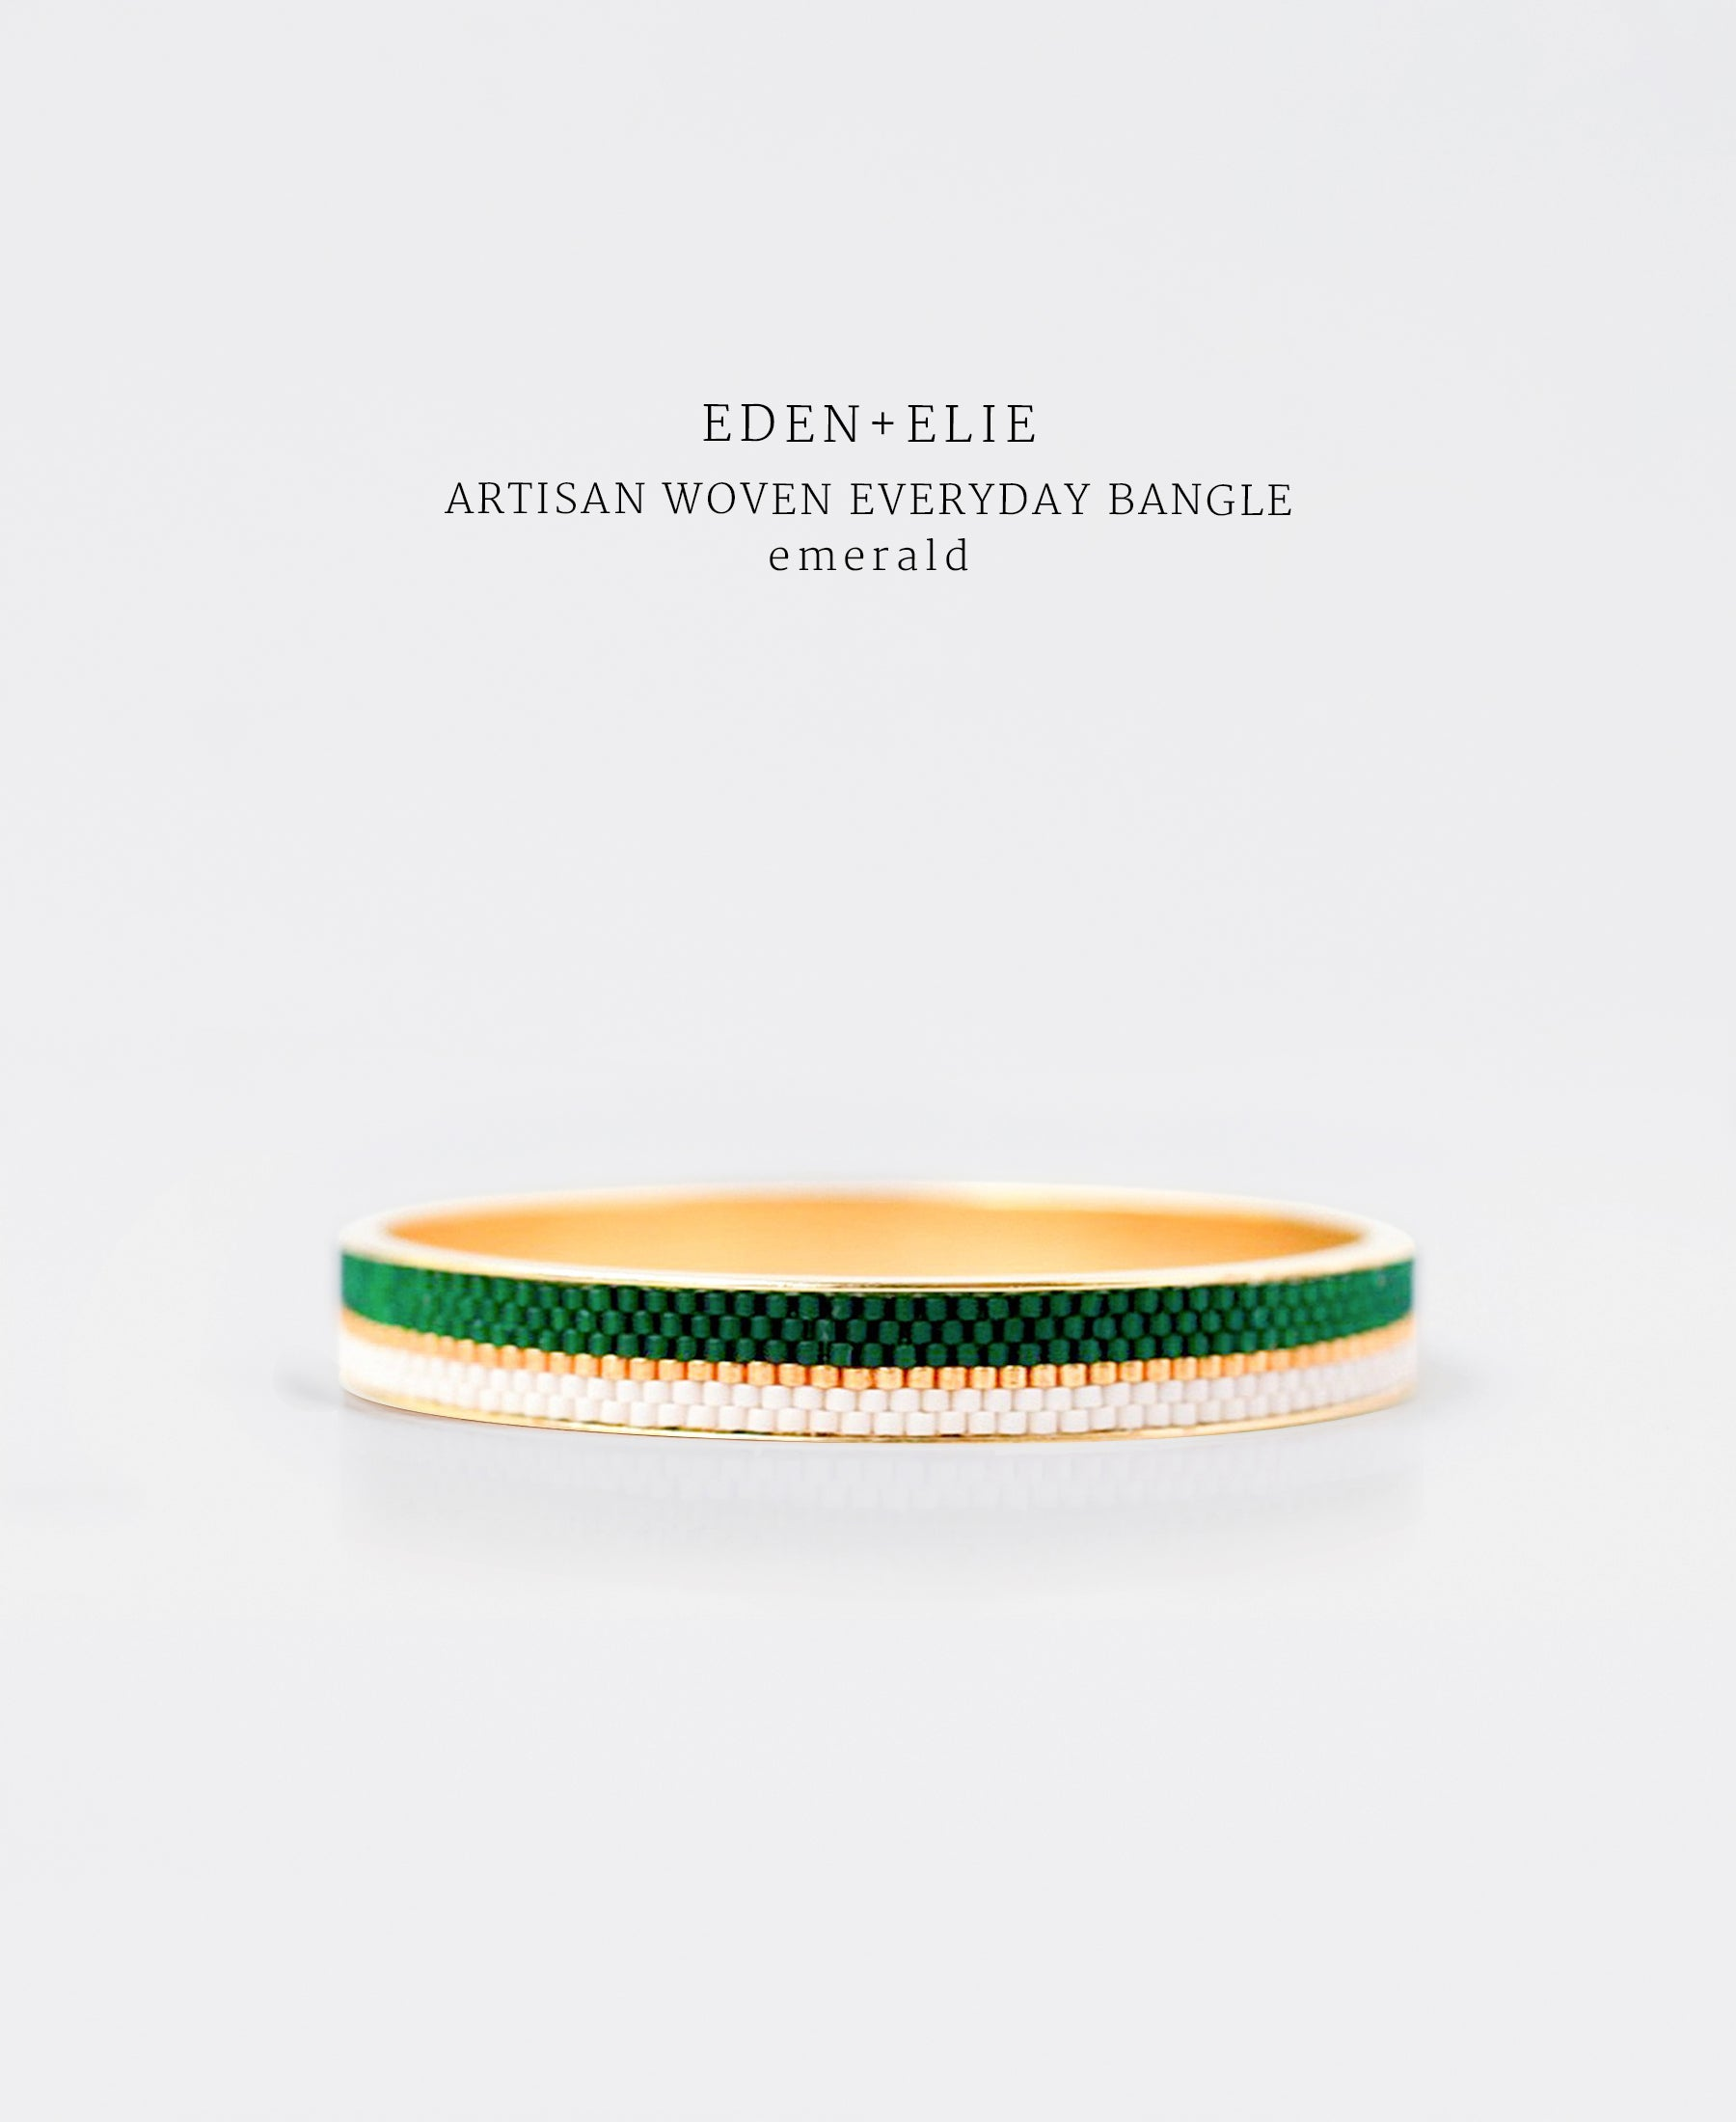 EDEN + ELIE Everyday gold narrow bangle - emerald green